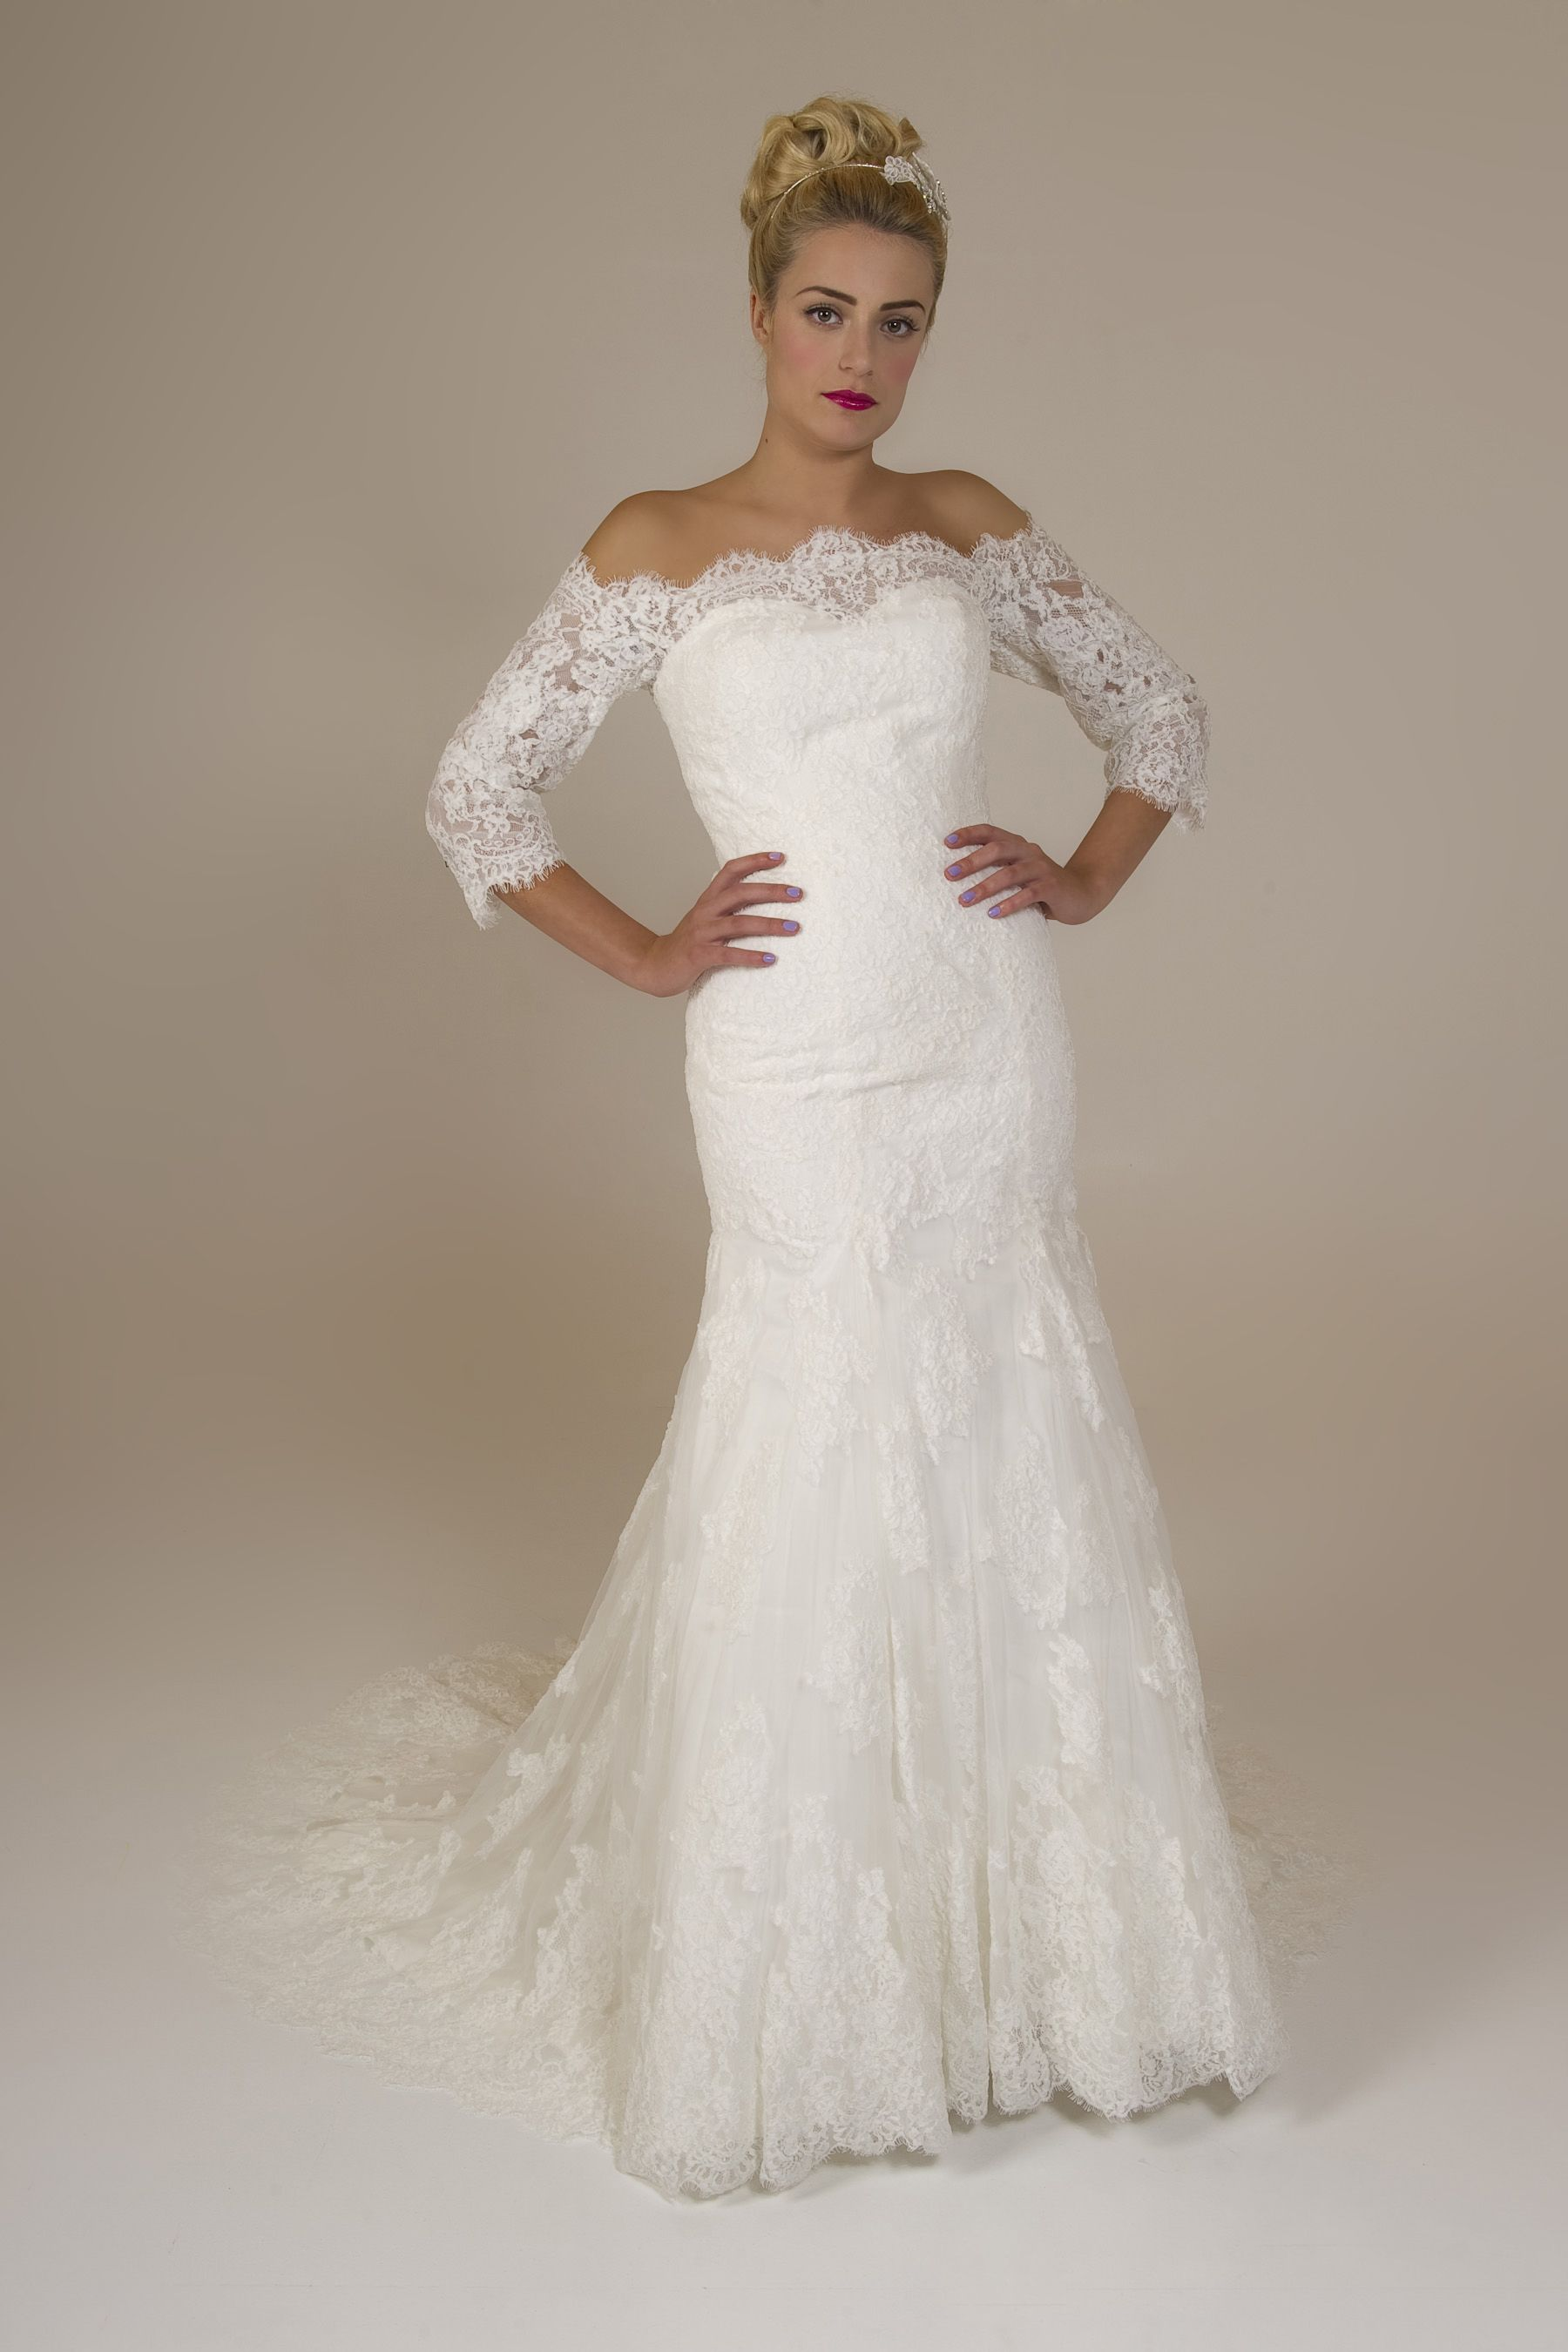 Louisa Brides by Harvee lace fishtail wedding dress with